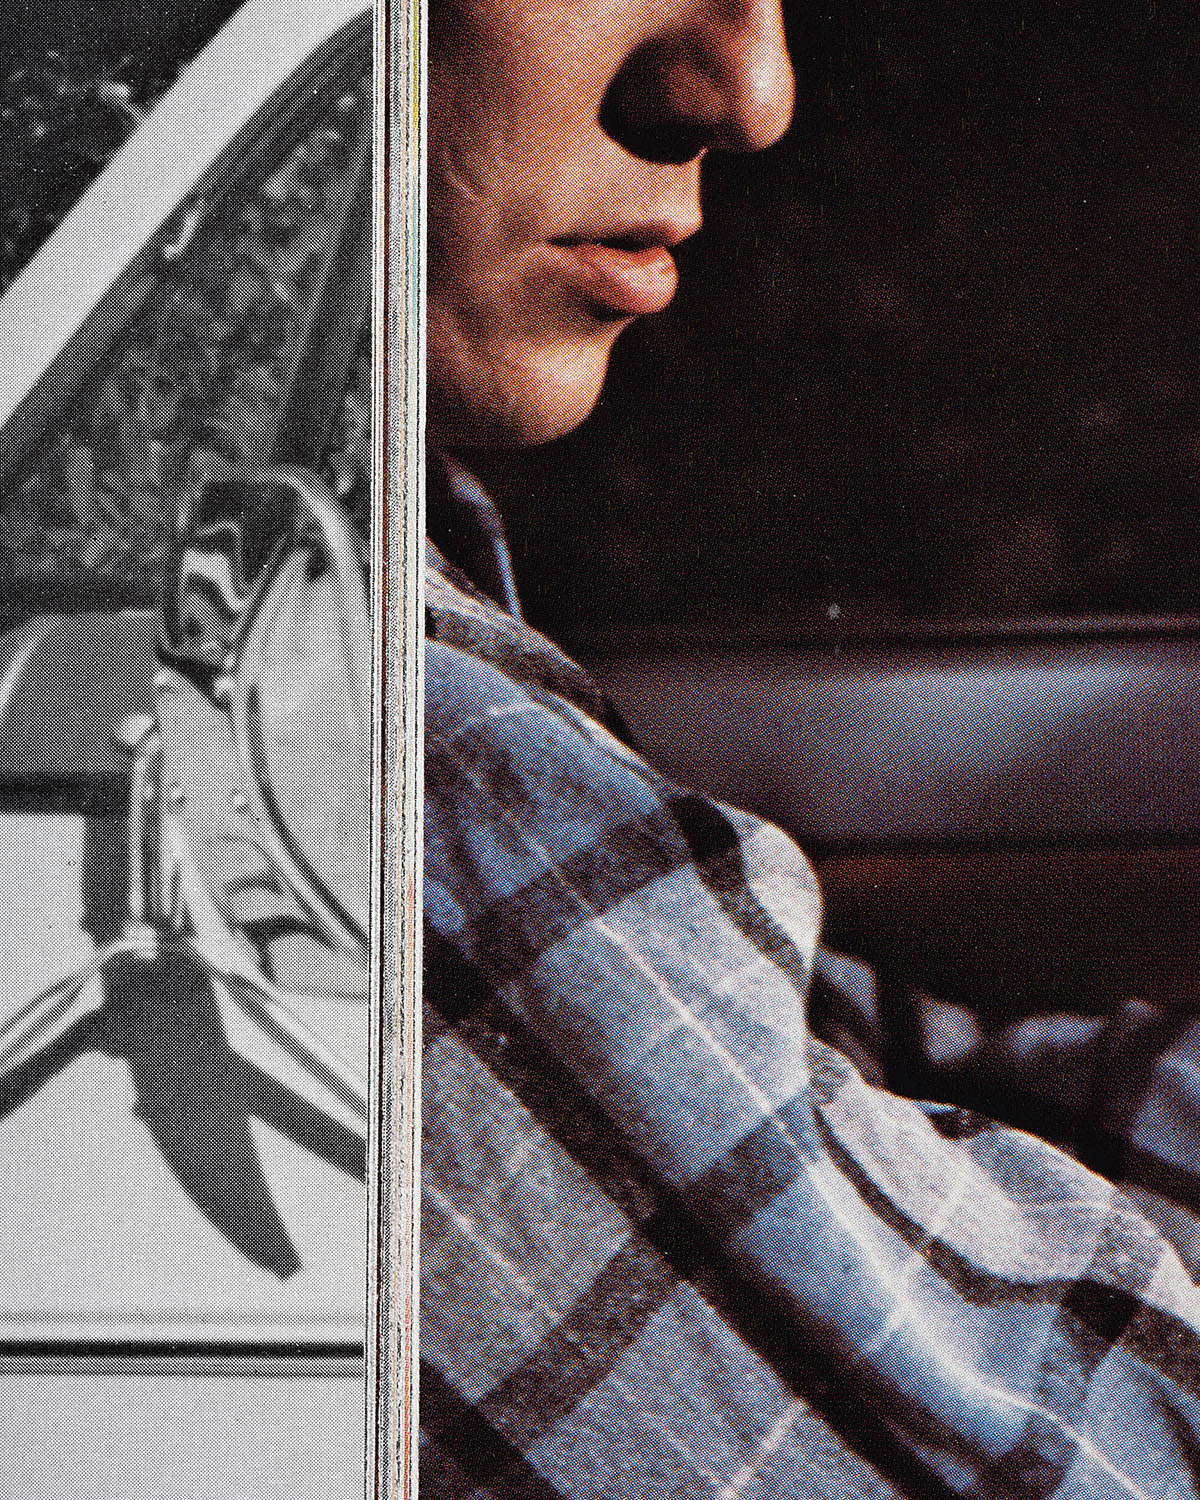 Pacifico Silano's 'I wish I never Saw the Sunshine' collages queer identity from the tattered folds of gay erotica